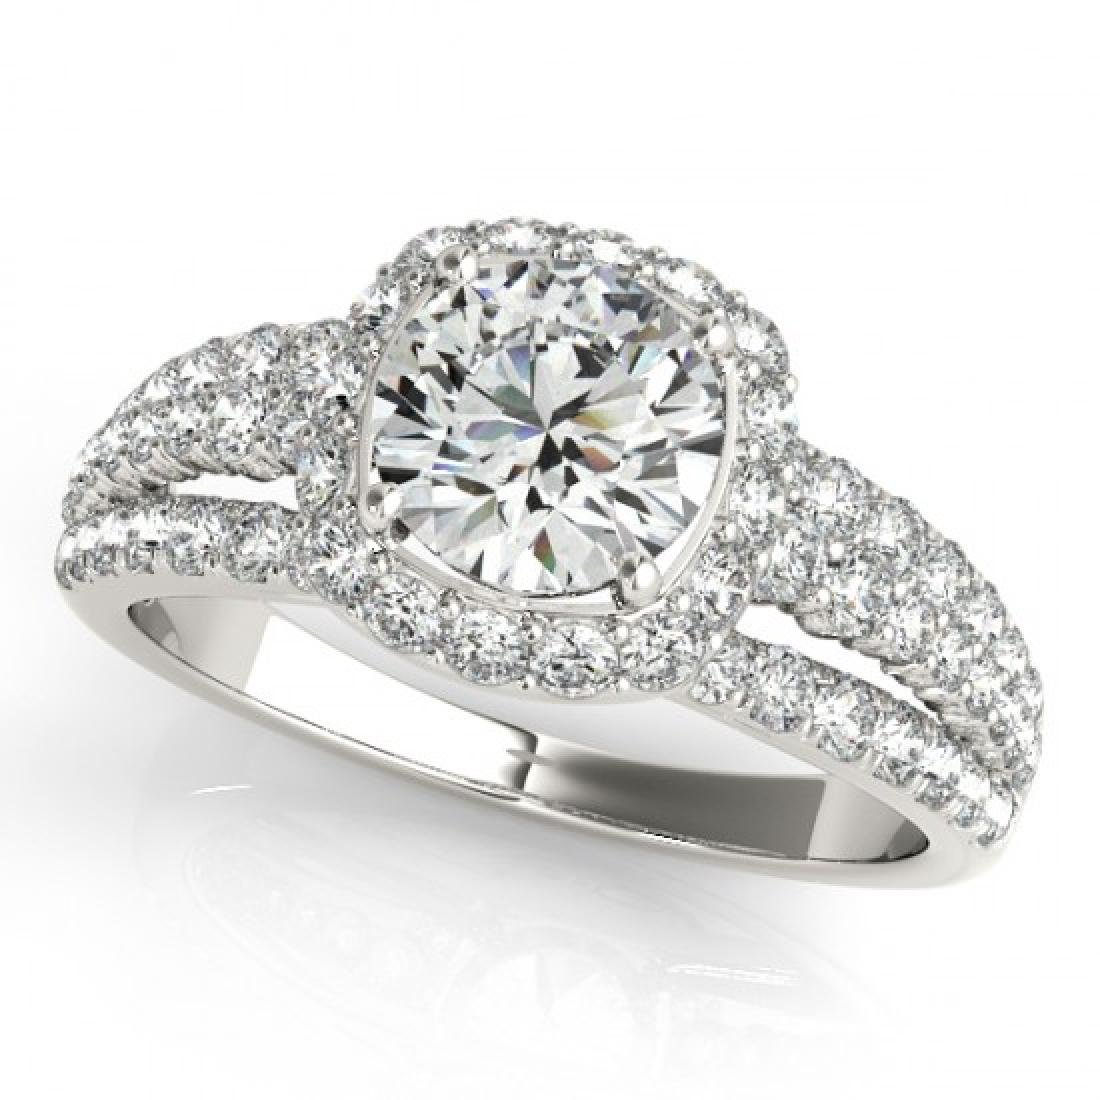 2.25 CTW Certified VS/SI Diamond Solitaire Halo Ring